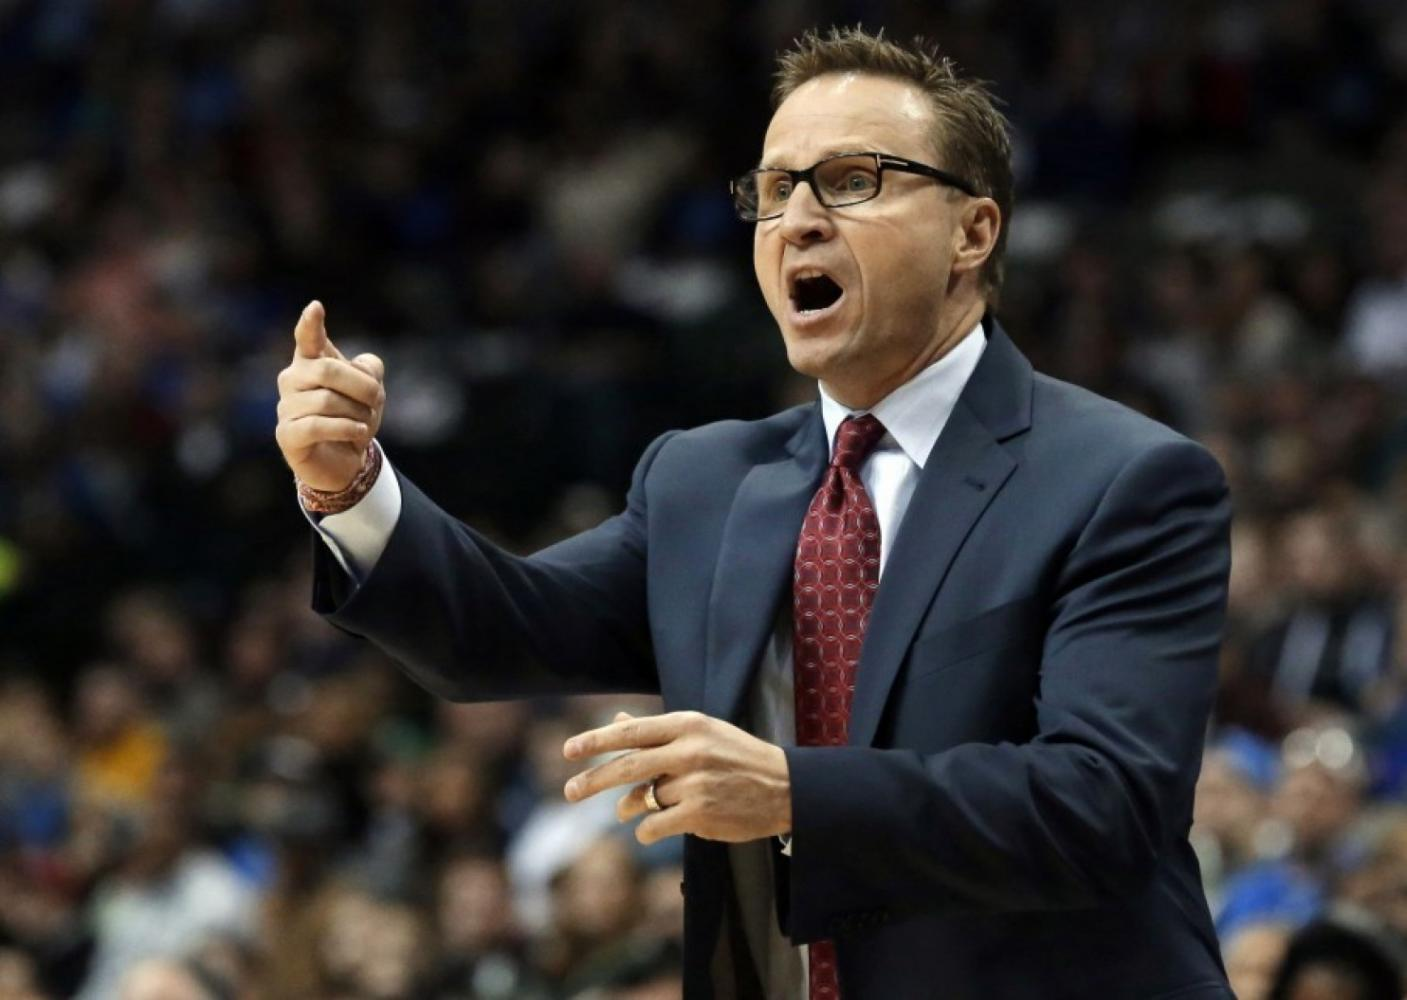 Wizards Head Coach Brooks recently joined the Wizards but his playoff experience didn't help the Wiz against the Celtics.